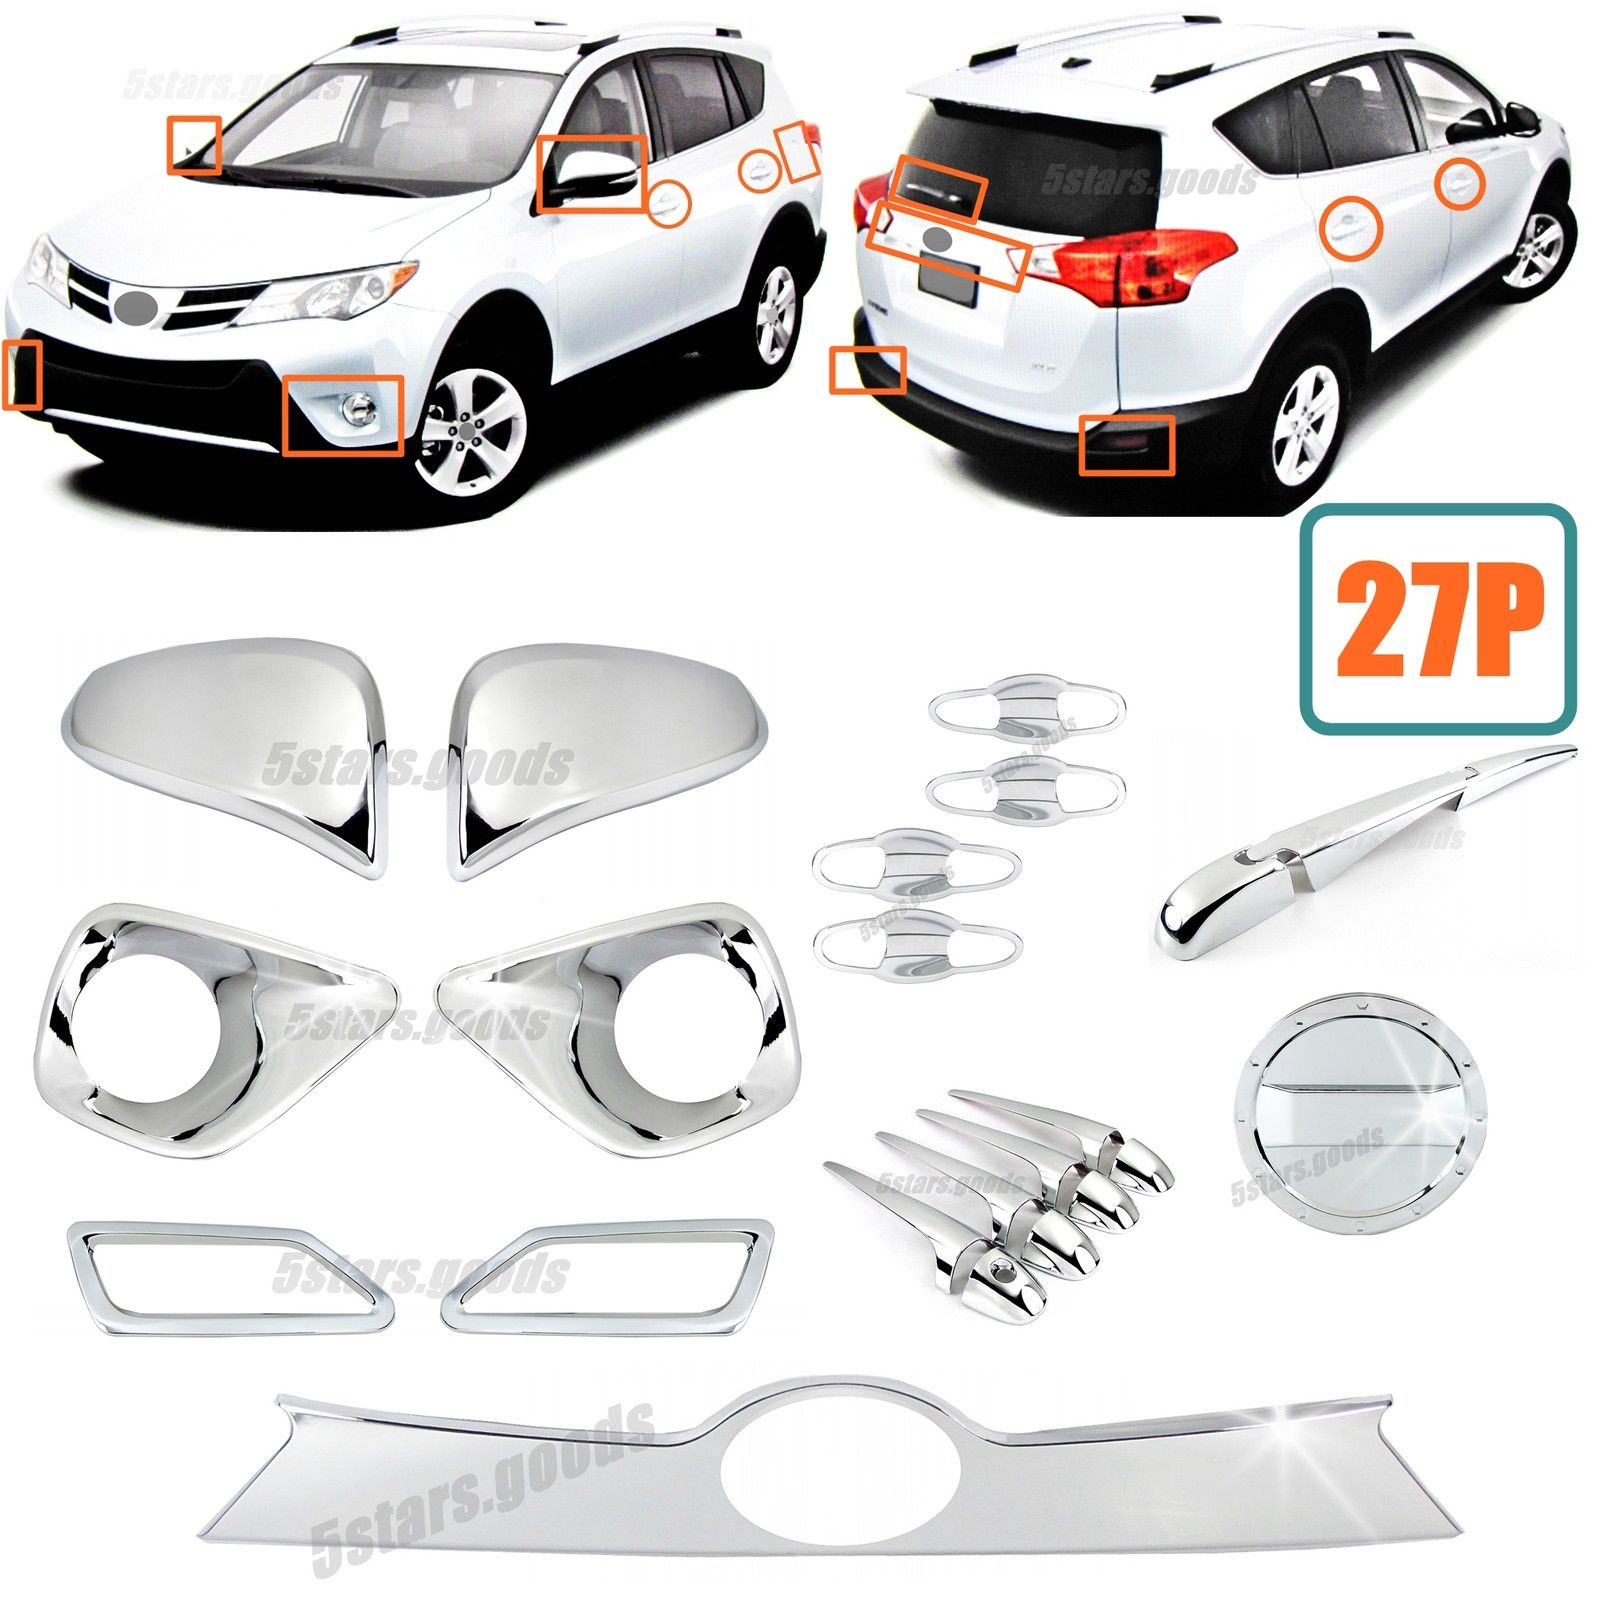 Awesome 27p Accessories Chrome Molding Covers Trims For Toyota Rav4 2017 2018